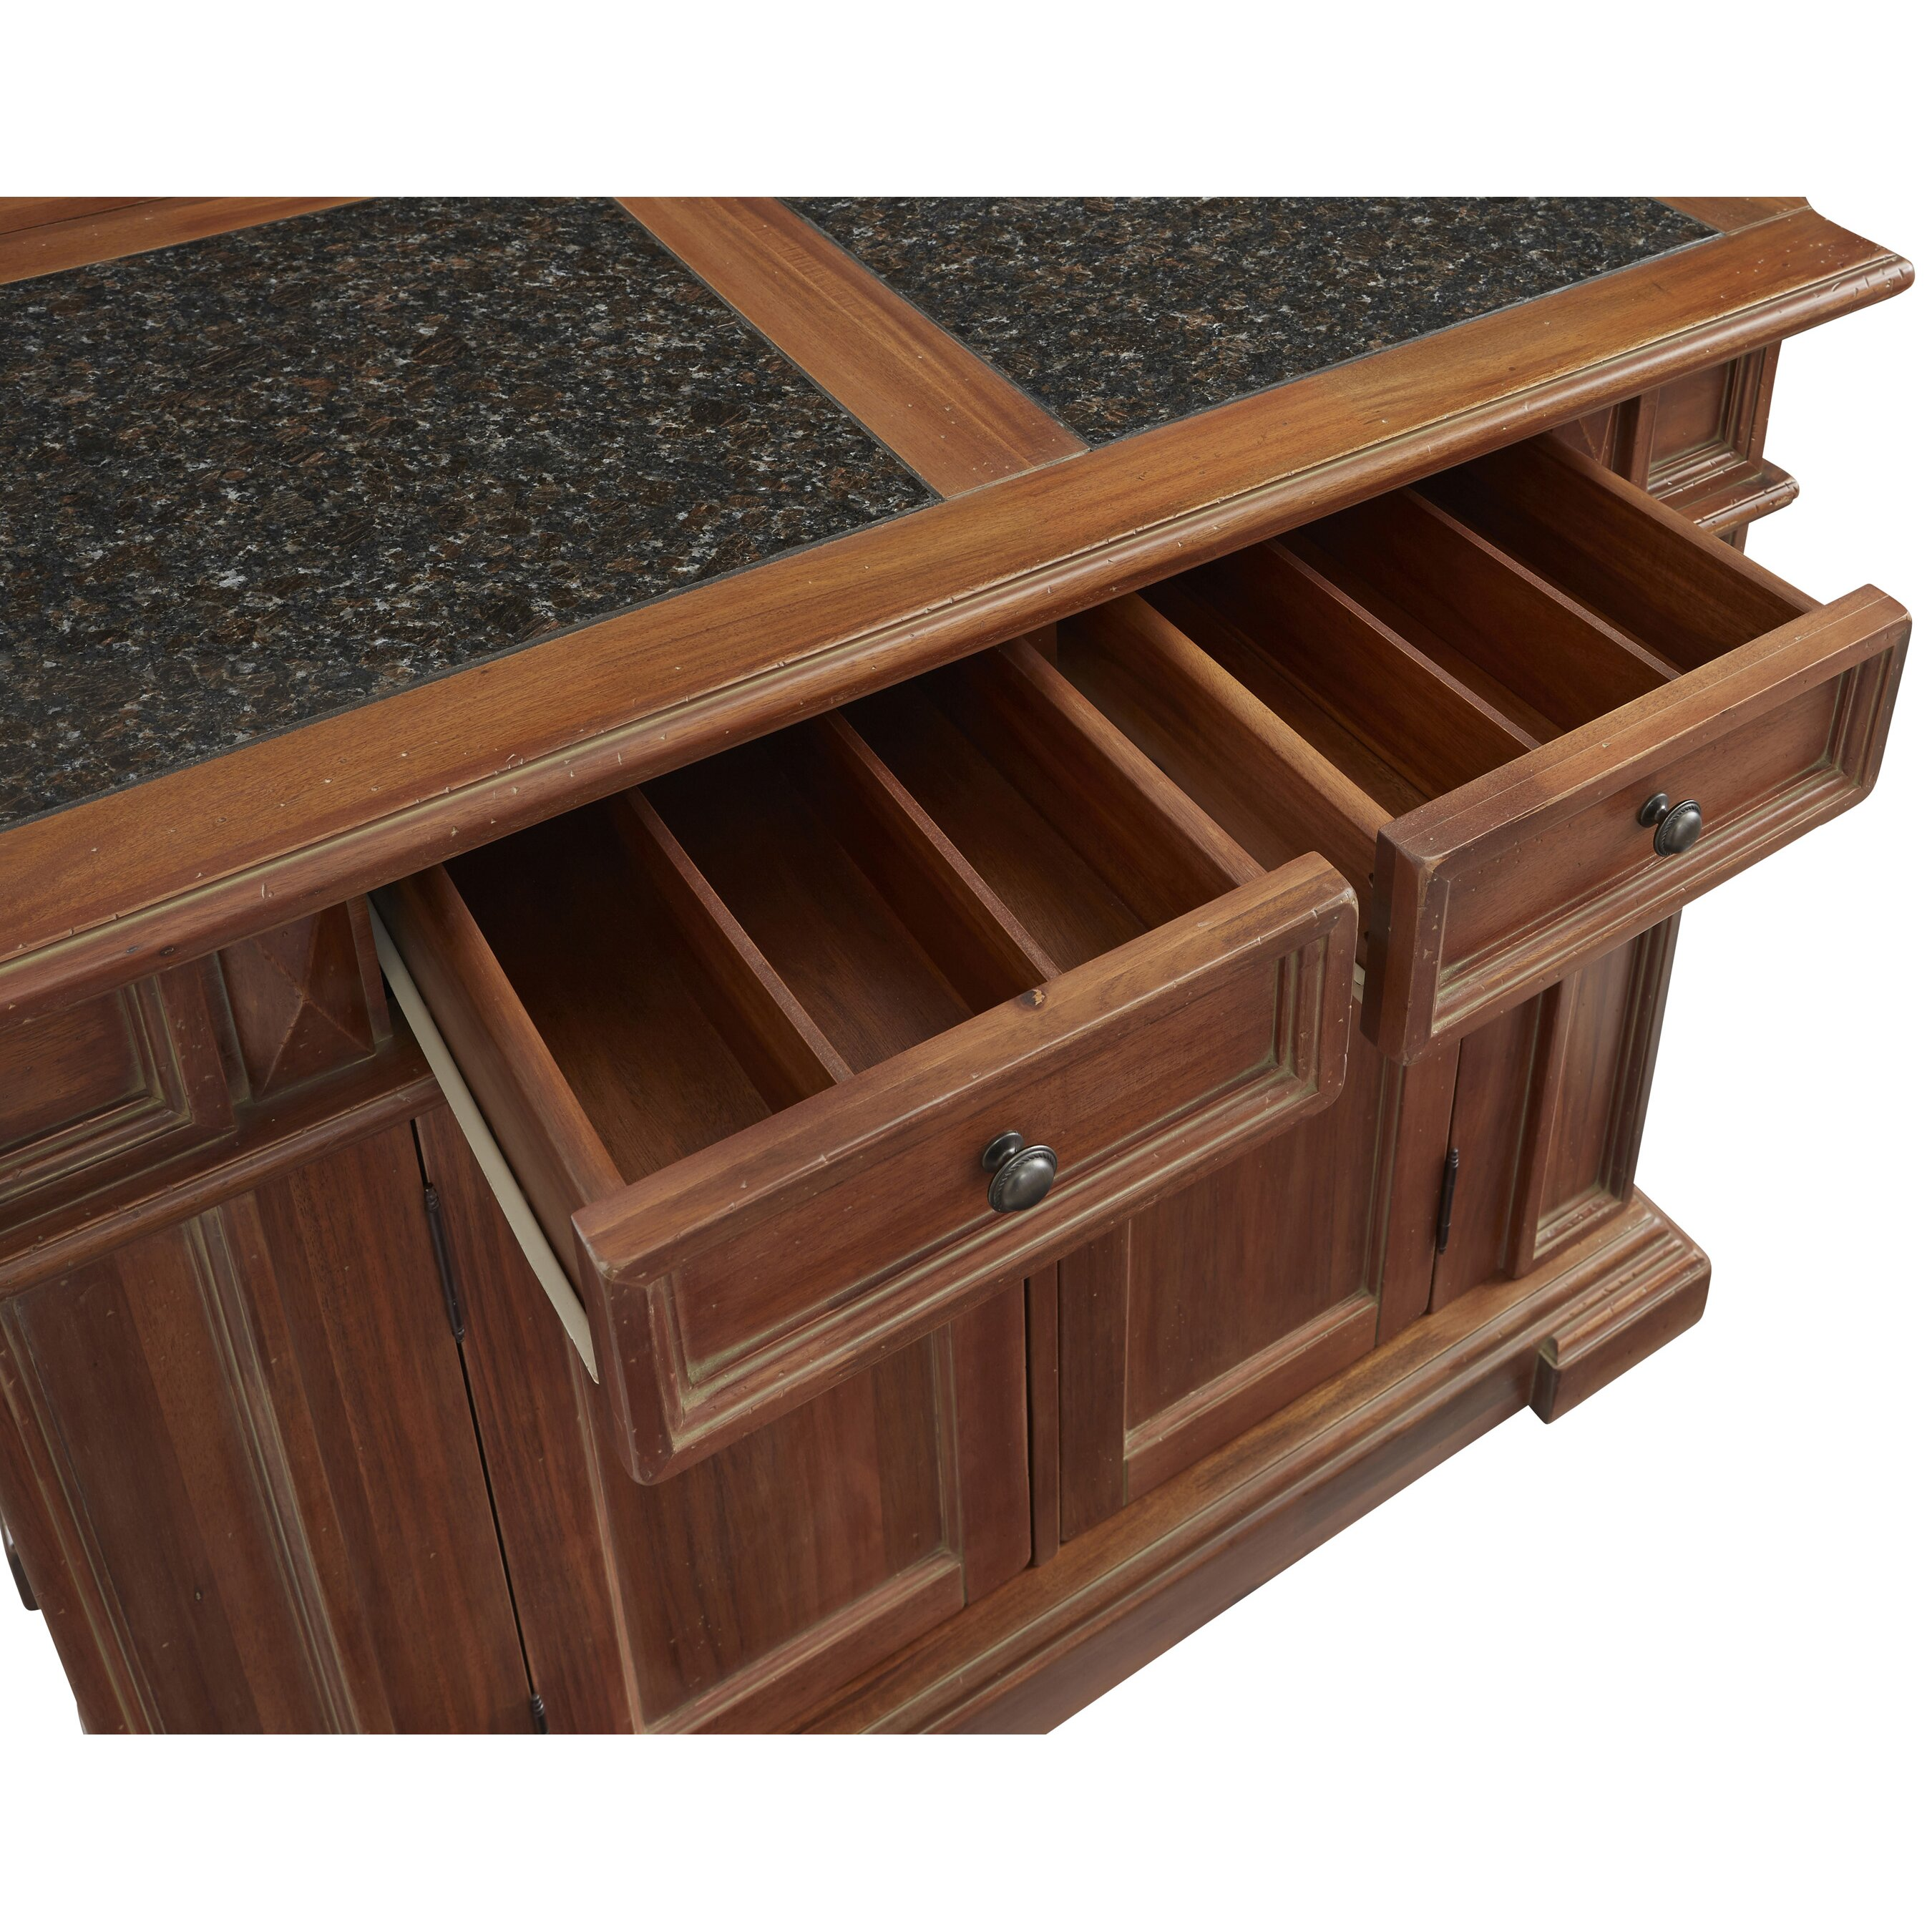 full tag black americana small large block of butcher finish kitchen size styles with granite home articles stools island